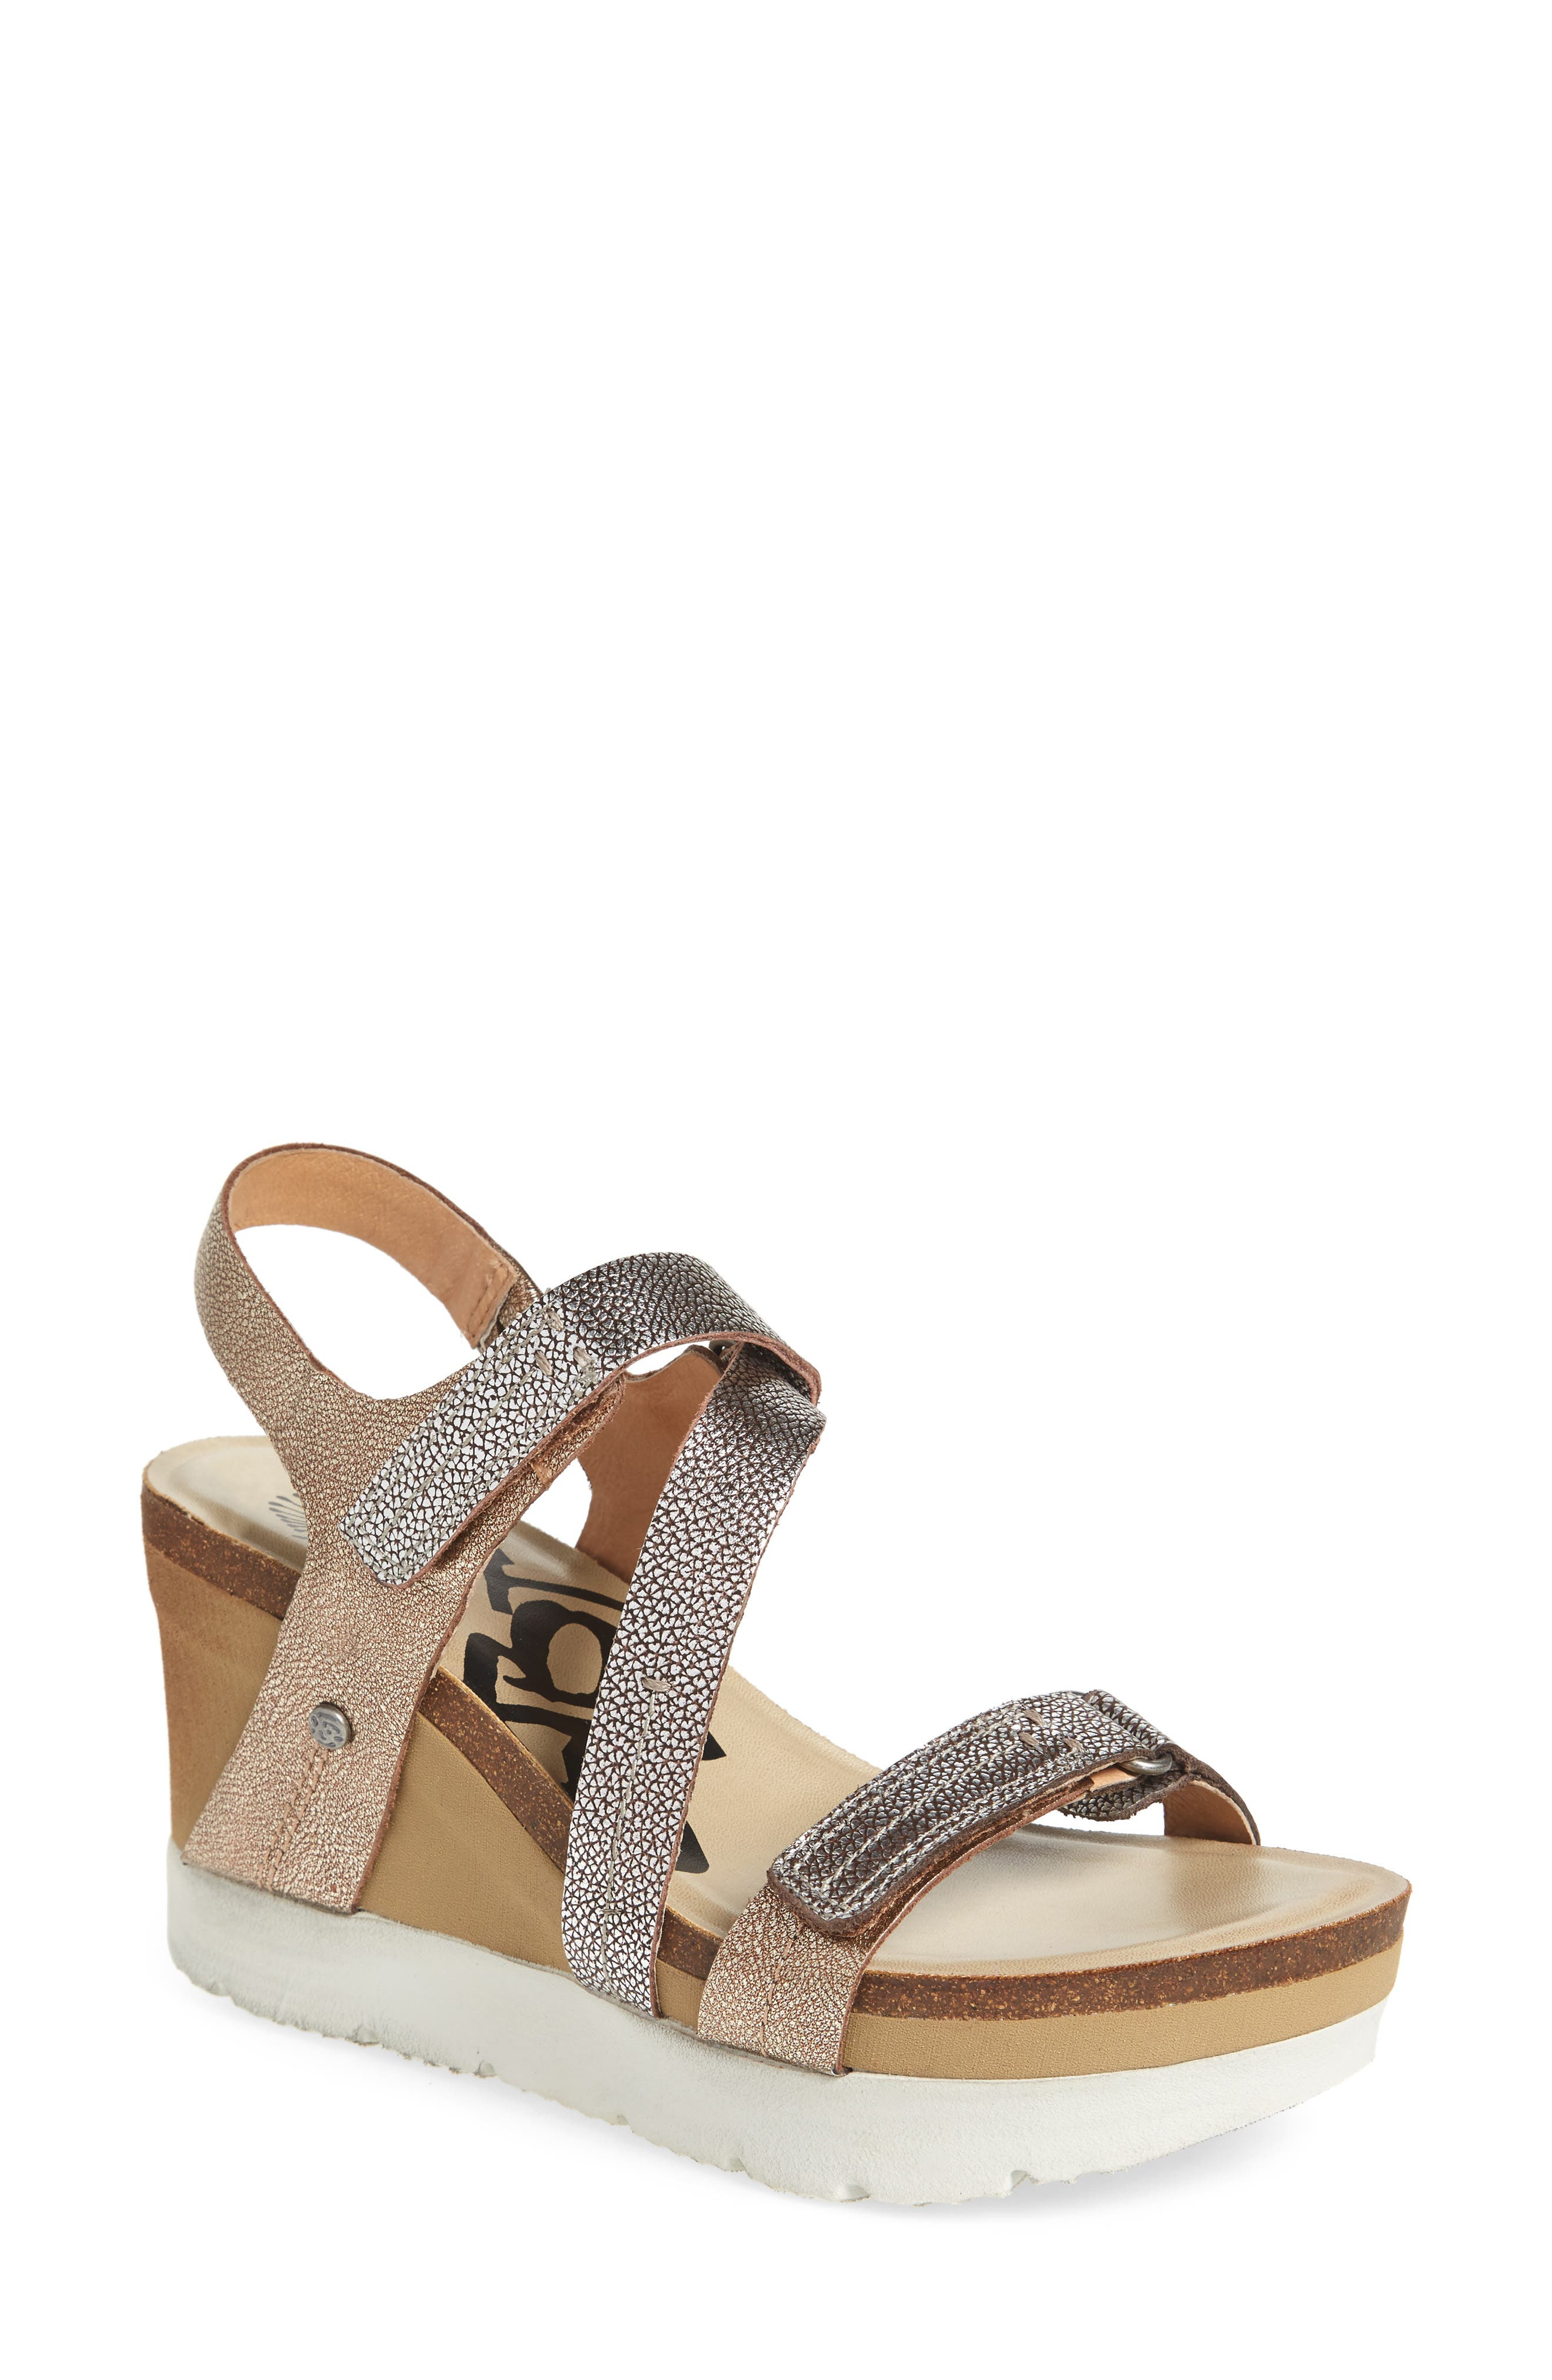 Wavey Wedge Sandal,                         Main,                         color, Gold Leather